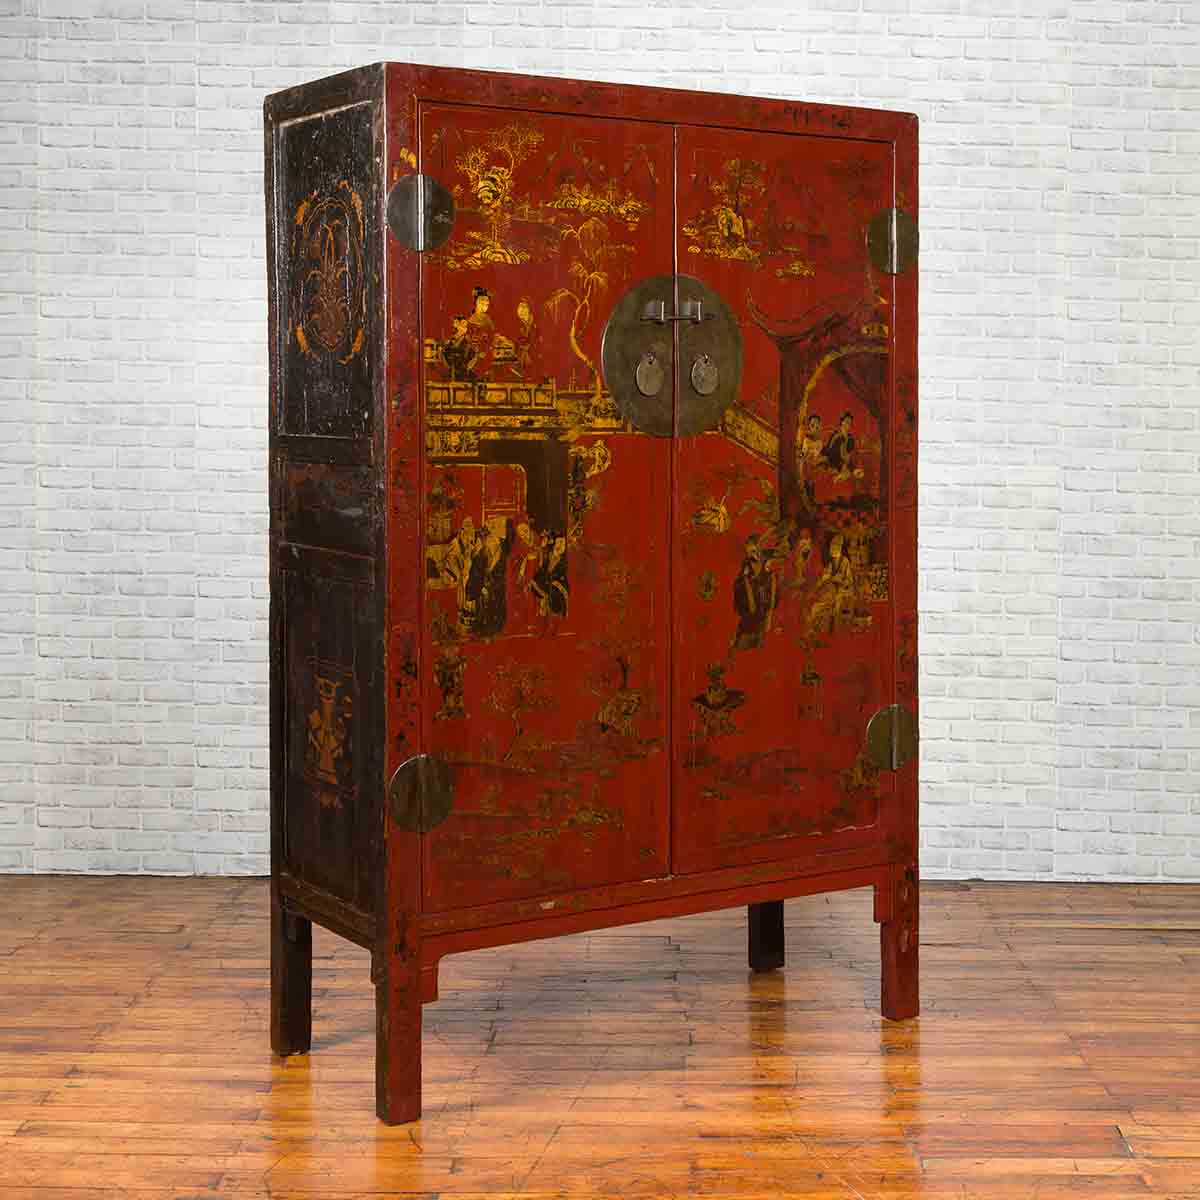 Chinese 19th Century Qing Dynasty Red Lacquered Cabinet with Chinoiserie Motifs